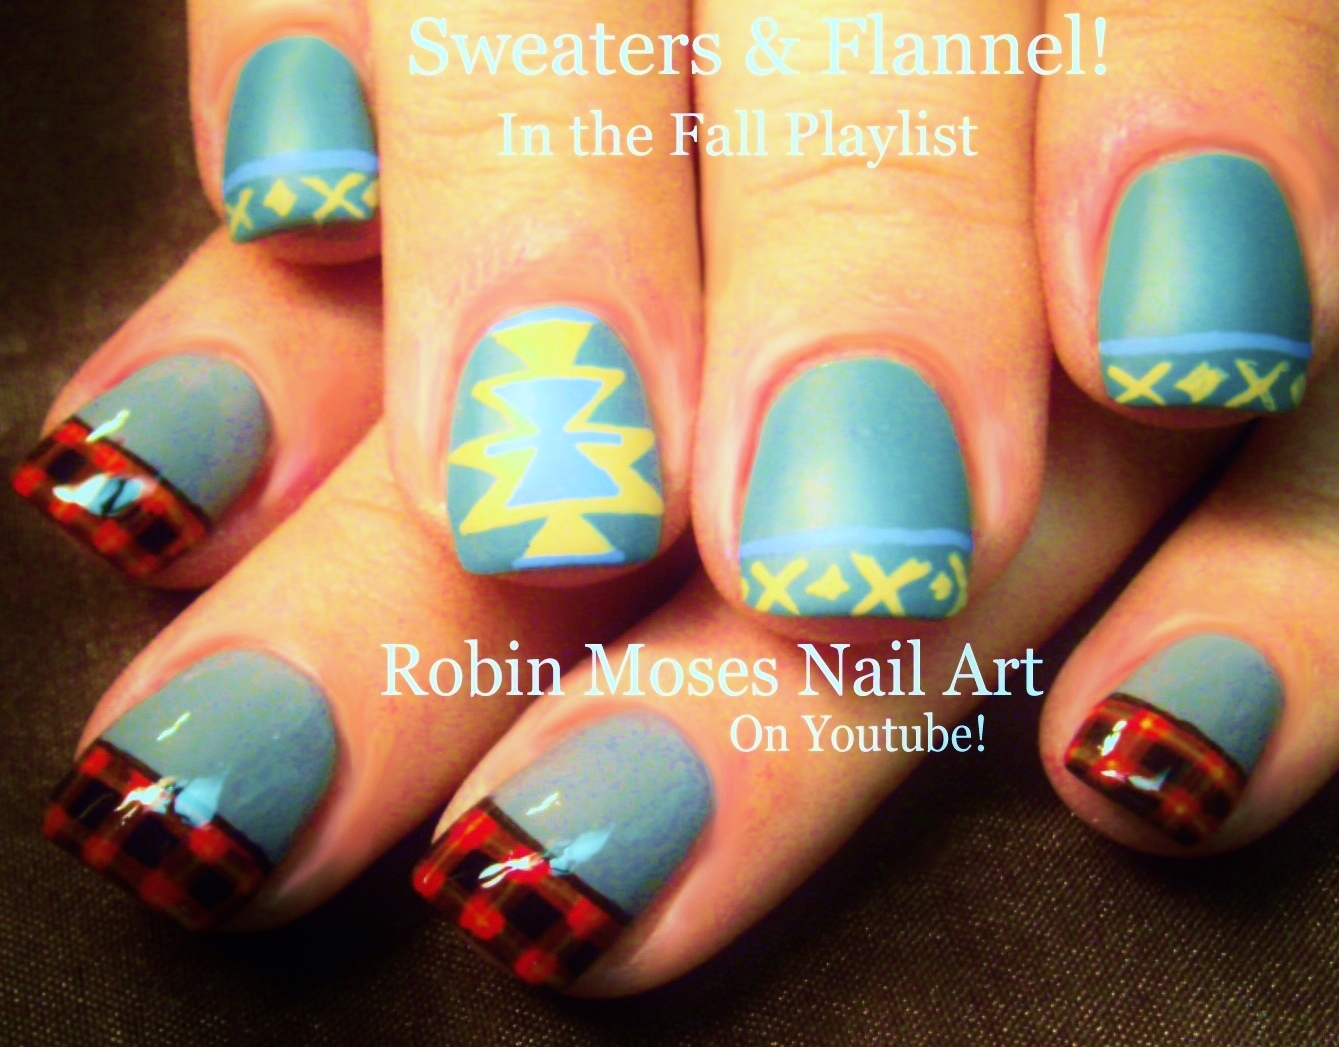 Robin Moses Nail Art: Sweaters and Plaid Flannel Nails up for ...